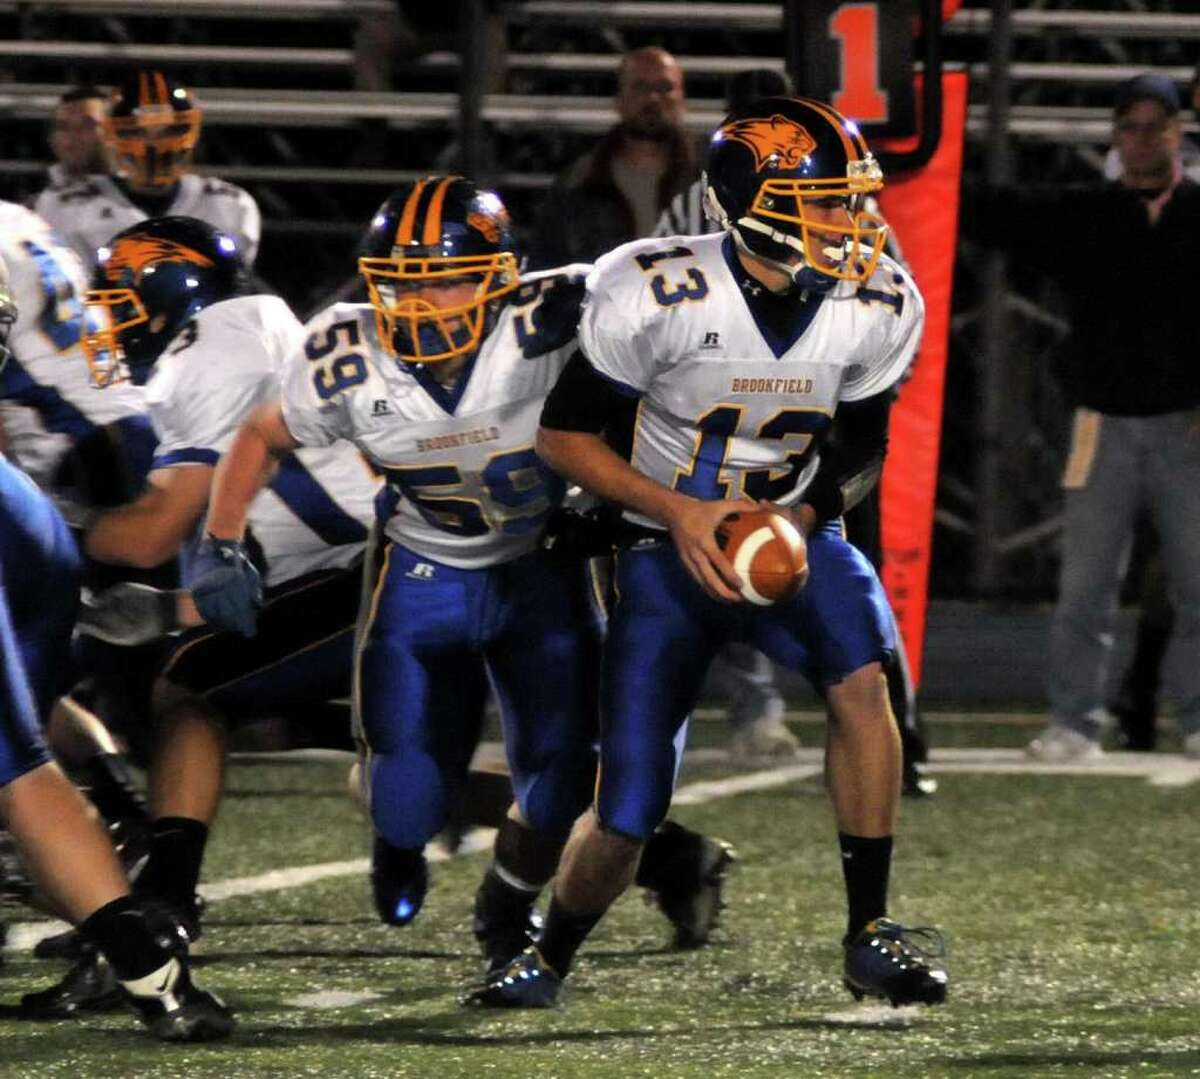 Brookfield's Boeing Brown, right, has possession of the ball while Brookfield Tyler Heckmann defends during a gamel at Bunnell High School on Friday evening Oct. 21, 2011.